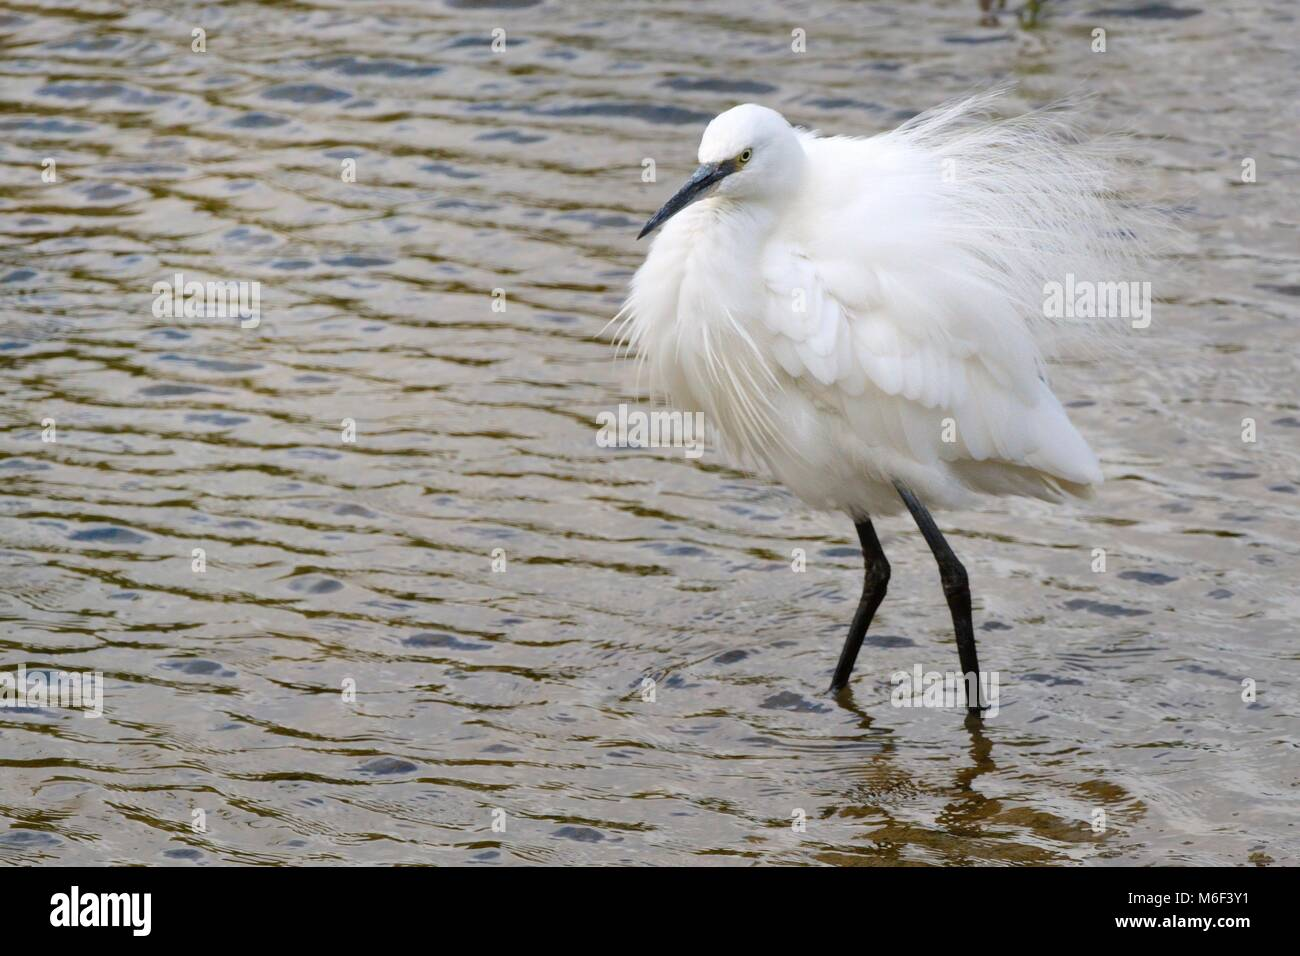 Little egret (Egretta garzetta) fluffing up the plumes on its back and chest, Rutland Water, Rutland, UK, August. - Stock Image